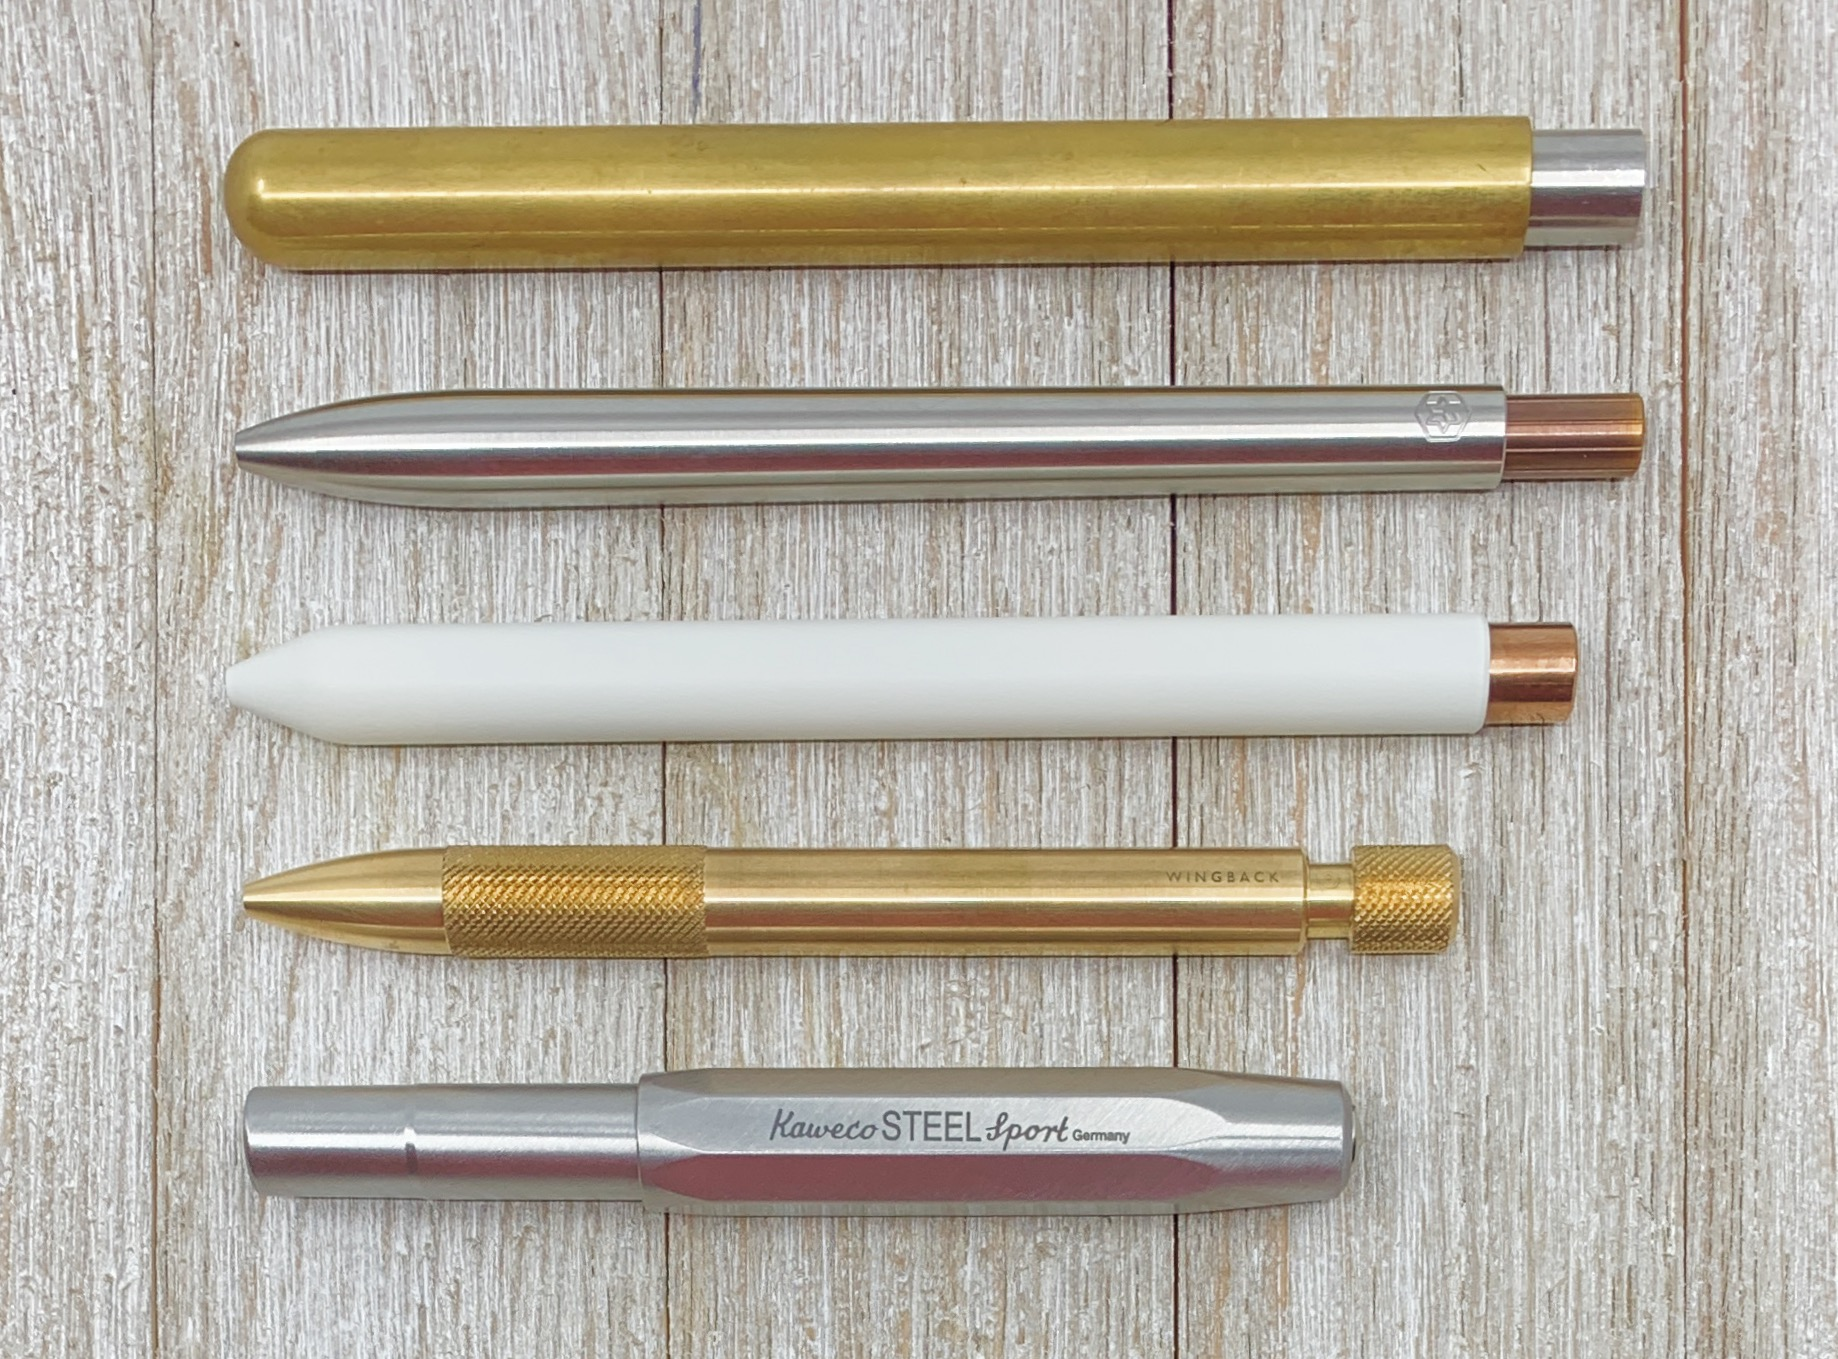 From top to bottom: Pen Type-B, Ajoto, Mark One, Wingback, Kaweco Sport.